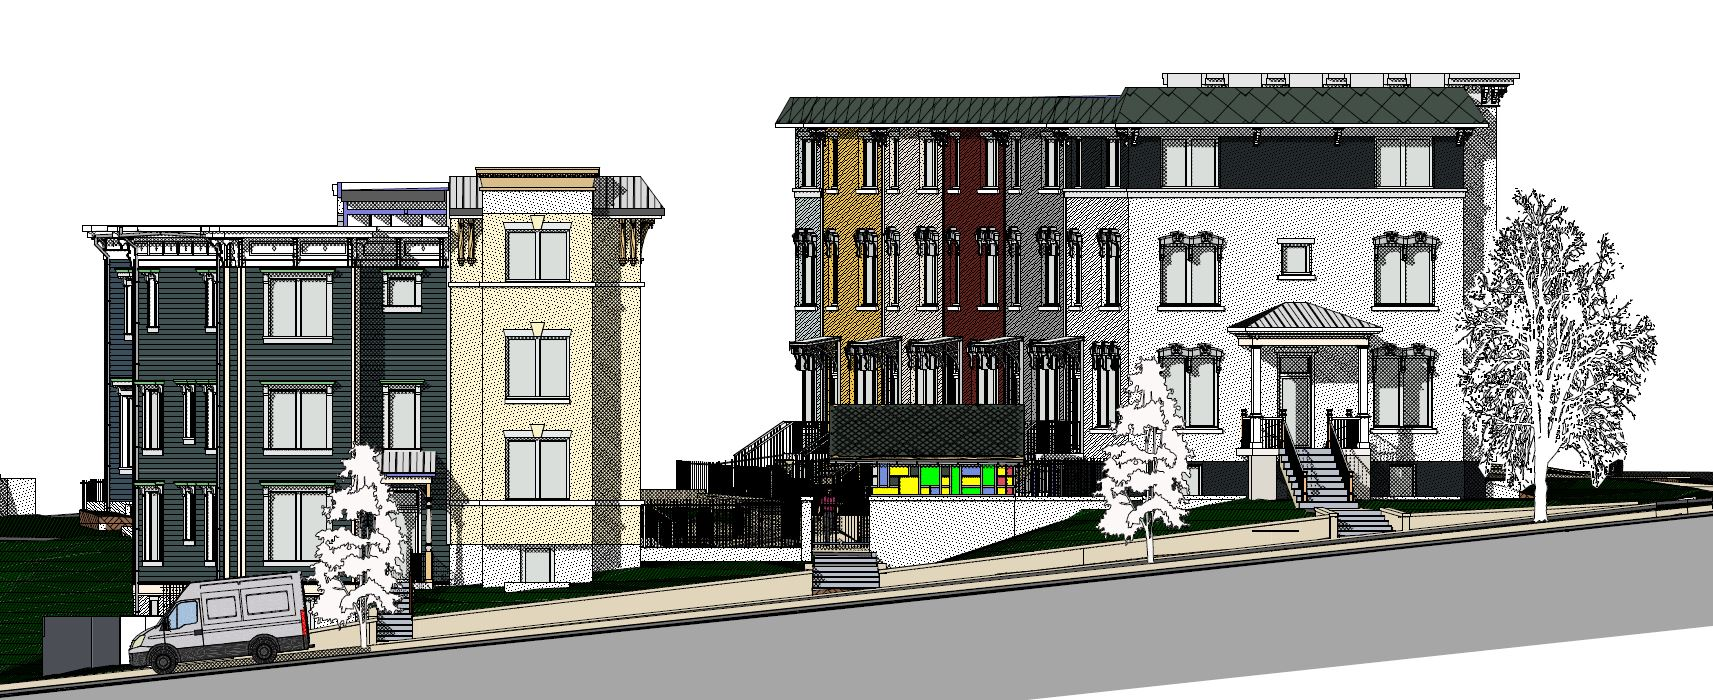 Stack Eight 13th ST Elevation.JPG